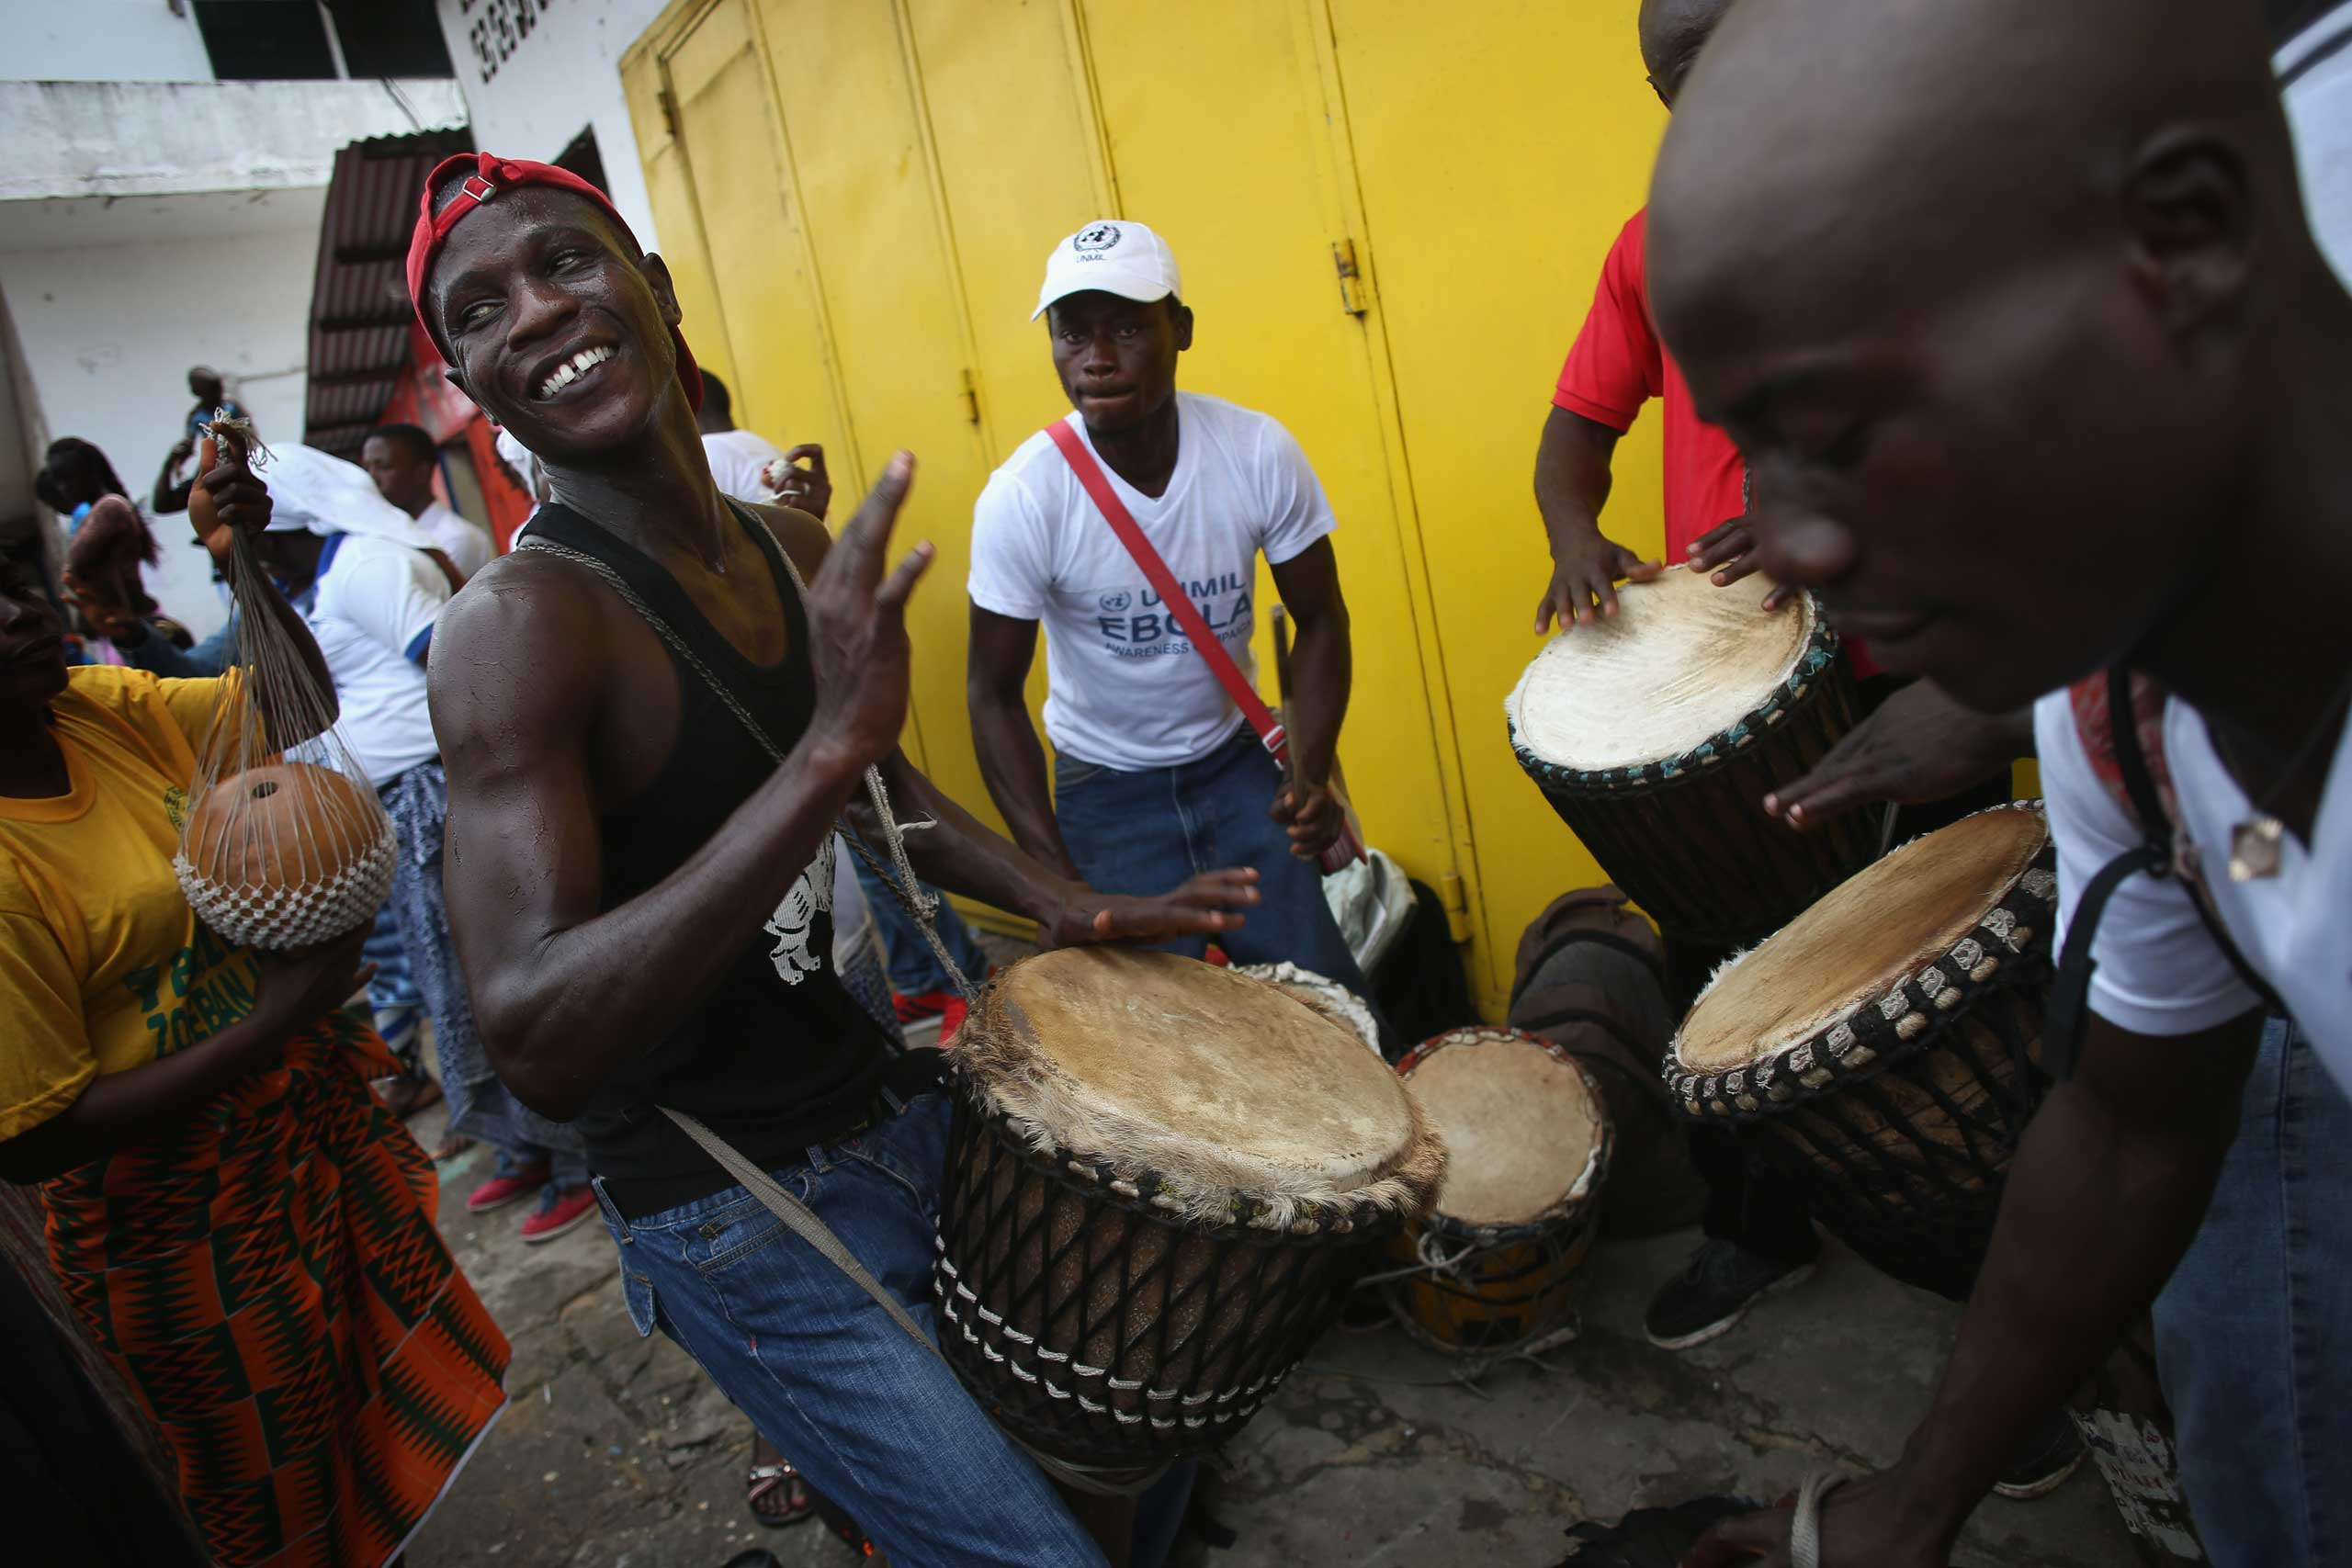 Public health advocates play music to attract people for an Ebola awareness and prevention event on Aug. 18, 2014 in Monrovia.